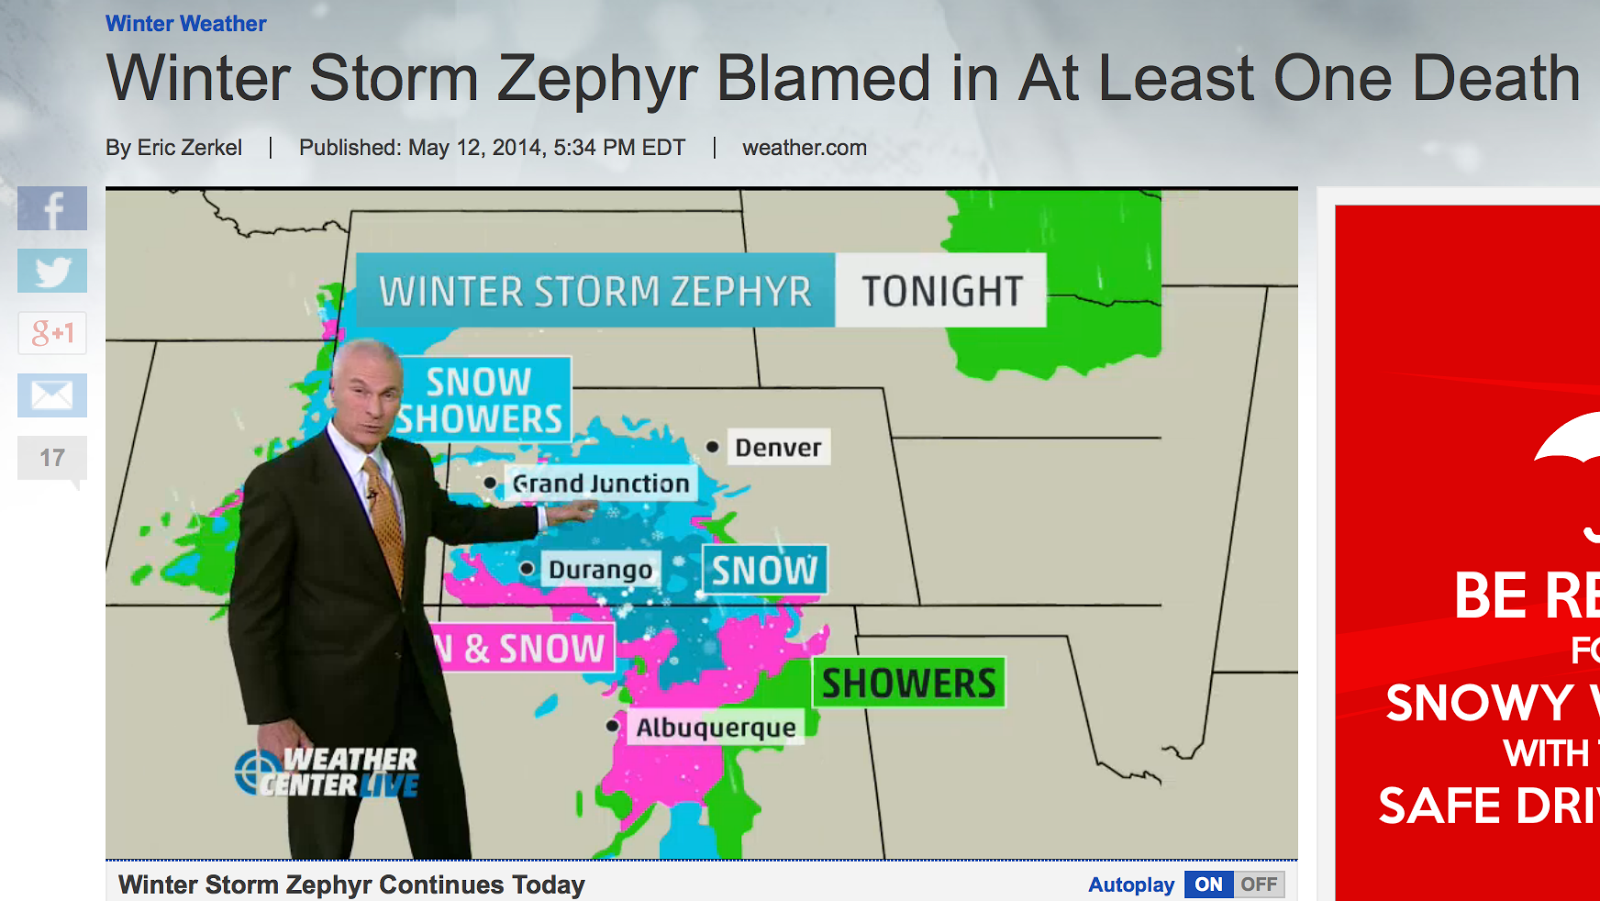 http://www.weather.com/news/weather-winter/winter-storm-zephyr-state-state-impacts-20140511